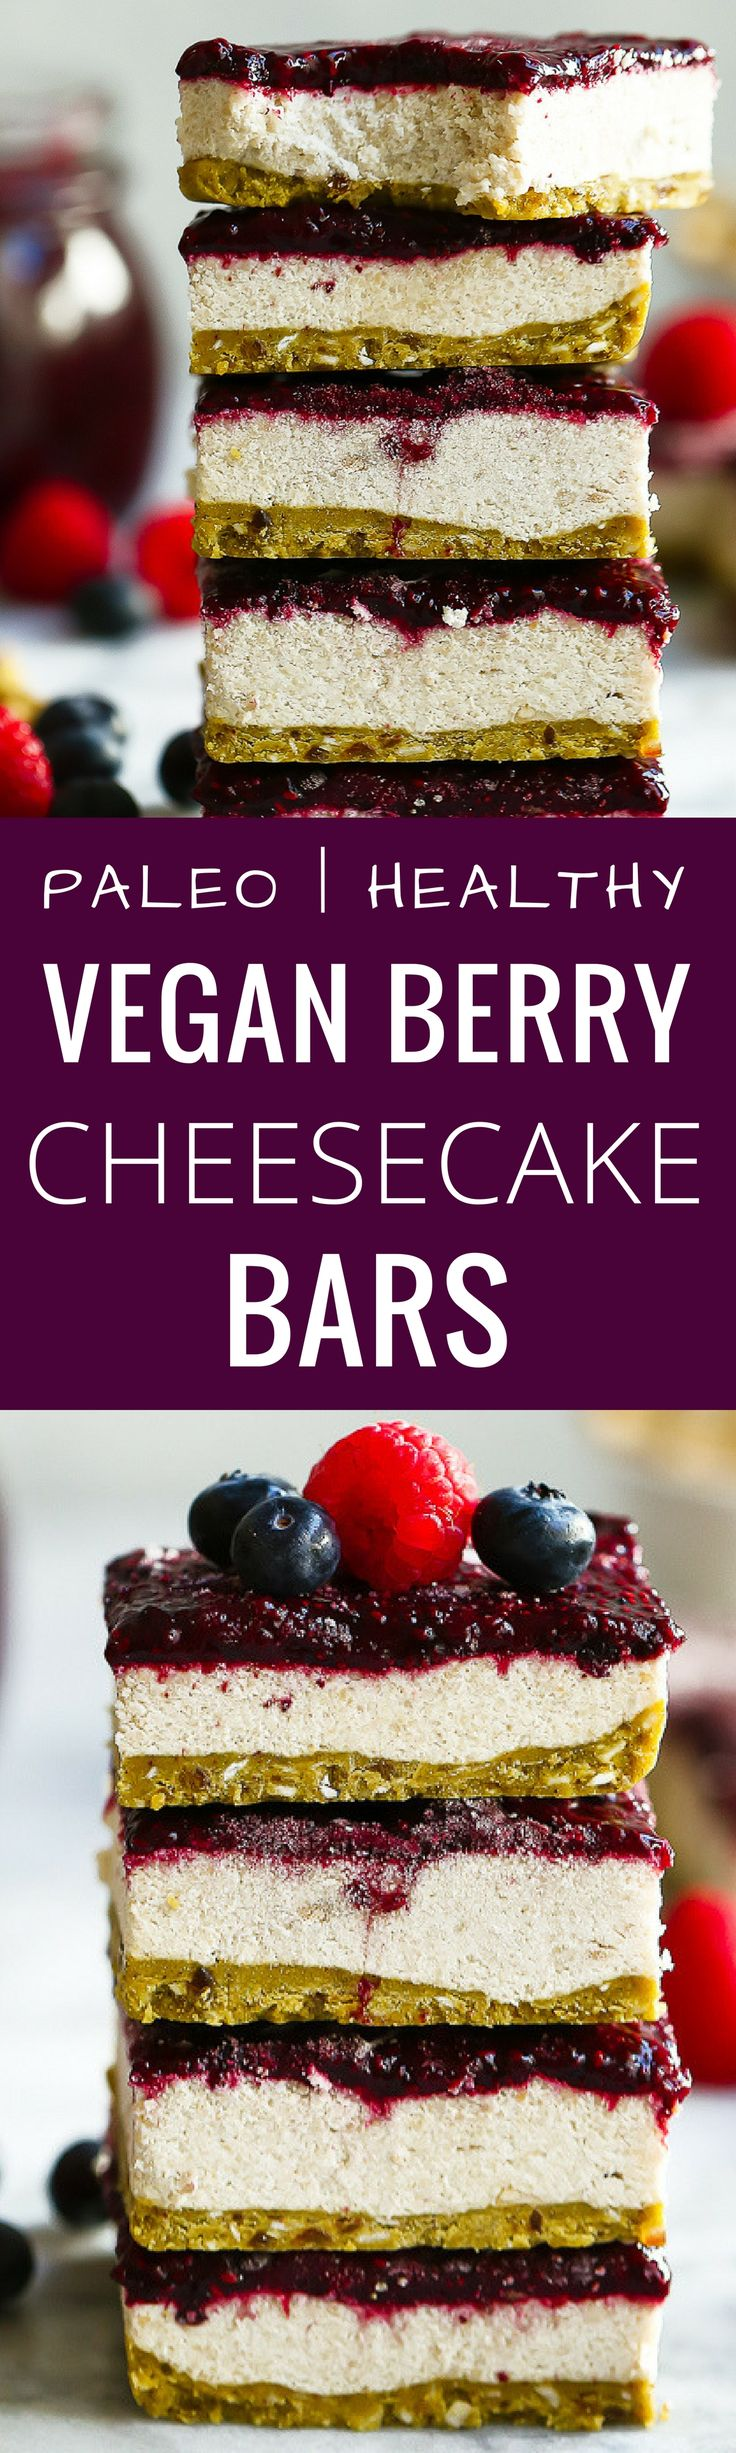 Paleo Vegan Berry Cheesecake Bars. These cheesecake bars are easy to make, taste delicious and are gluten free, grain free, dairy free and sugar free! Low carb cheesecake bars. No bake cheesecake bars. Best paleo vegan cheesecake bars recipe here. Easy vegan cheesecake recipes. Paleo cheesecake recipe. via @themovementmenu